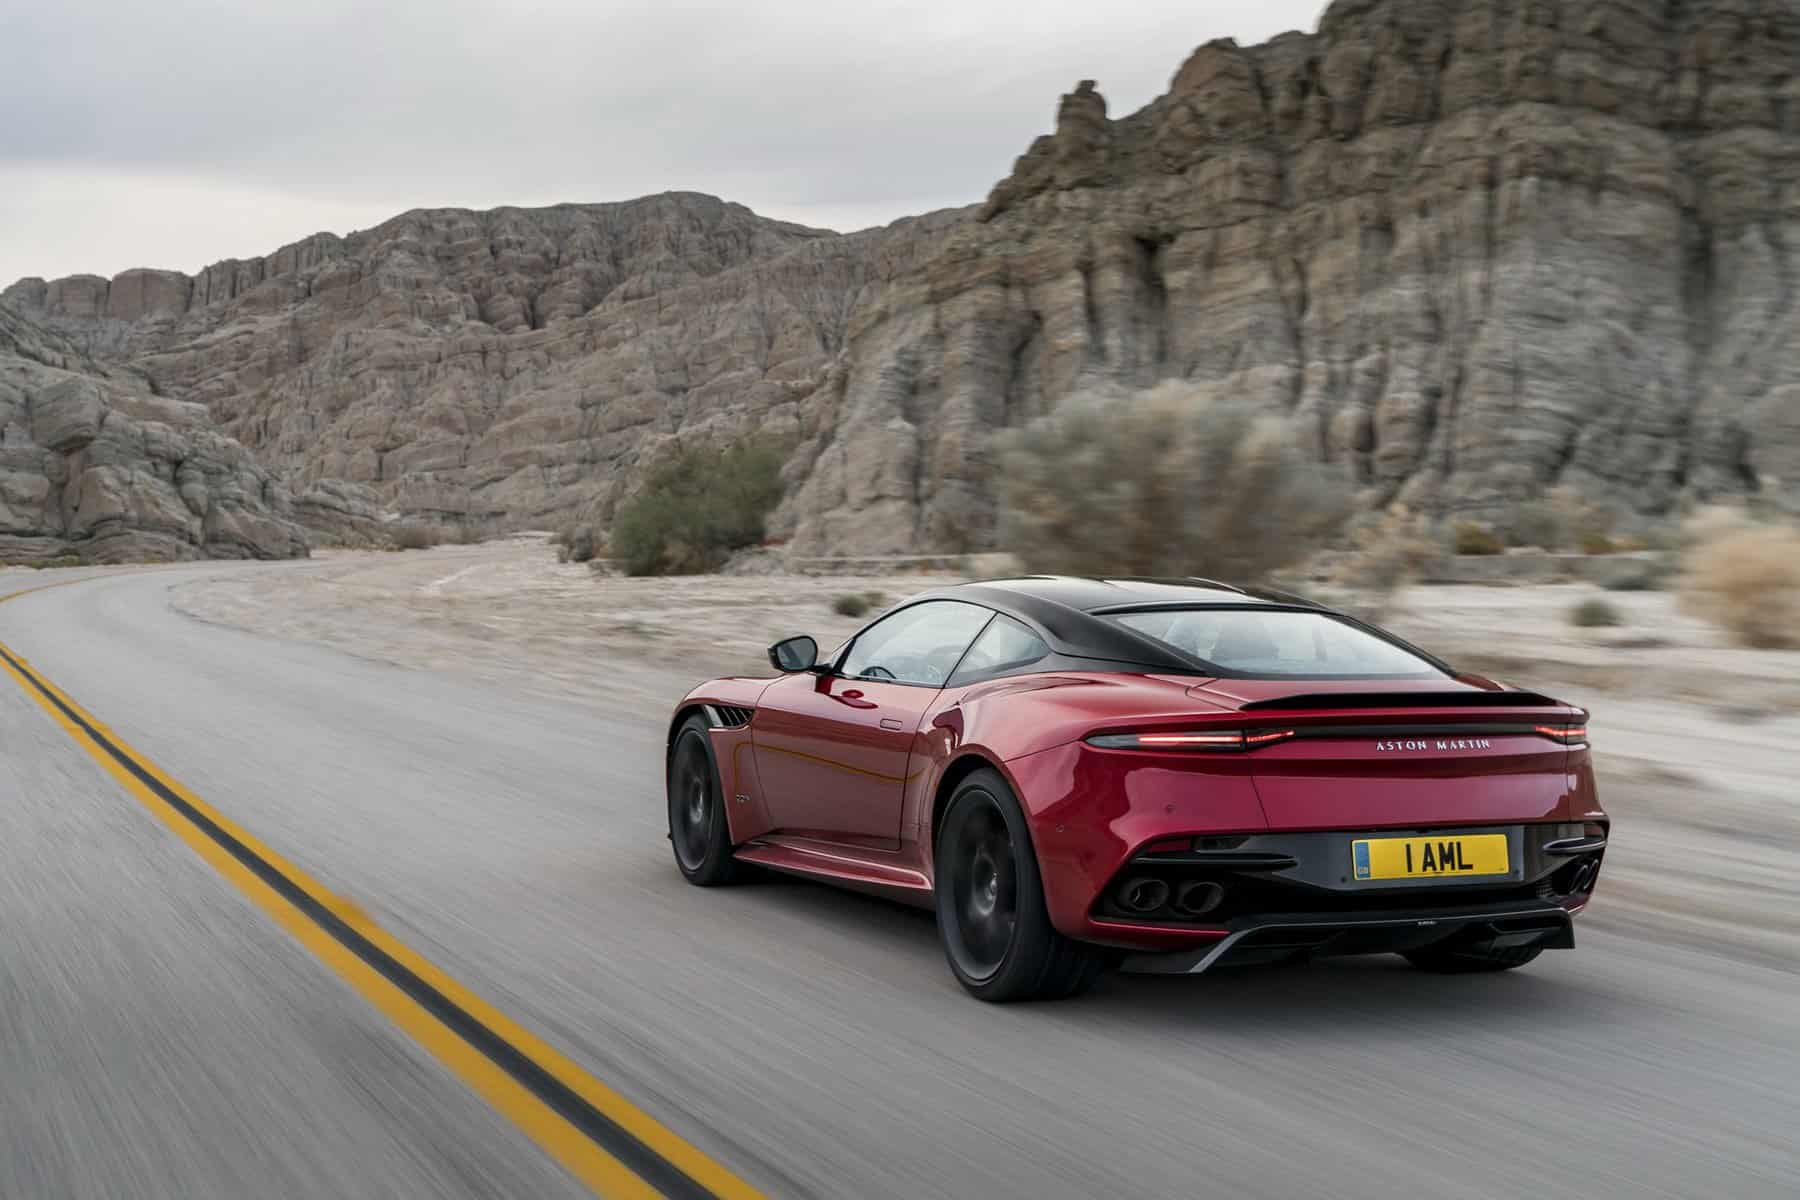 2019 Aston Martin DBS Superleggera 5